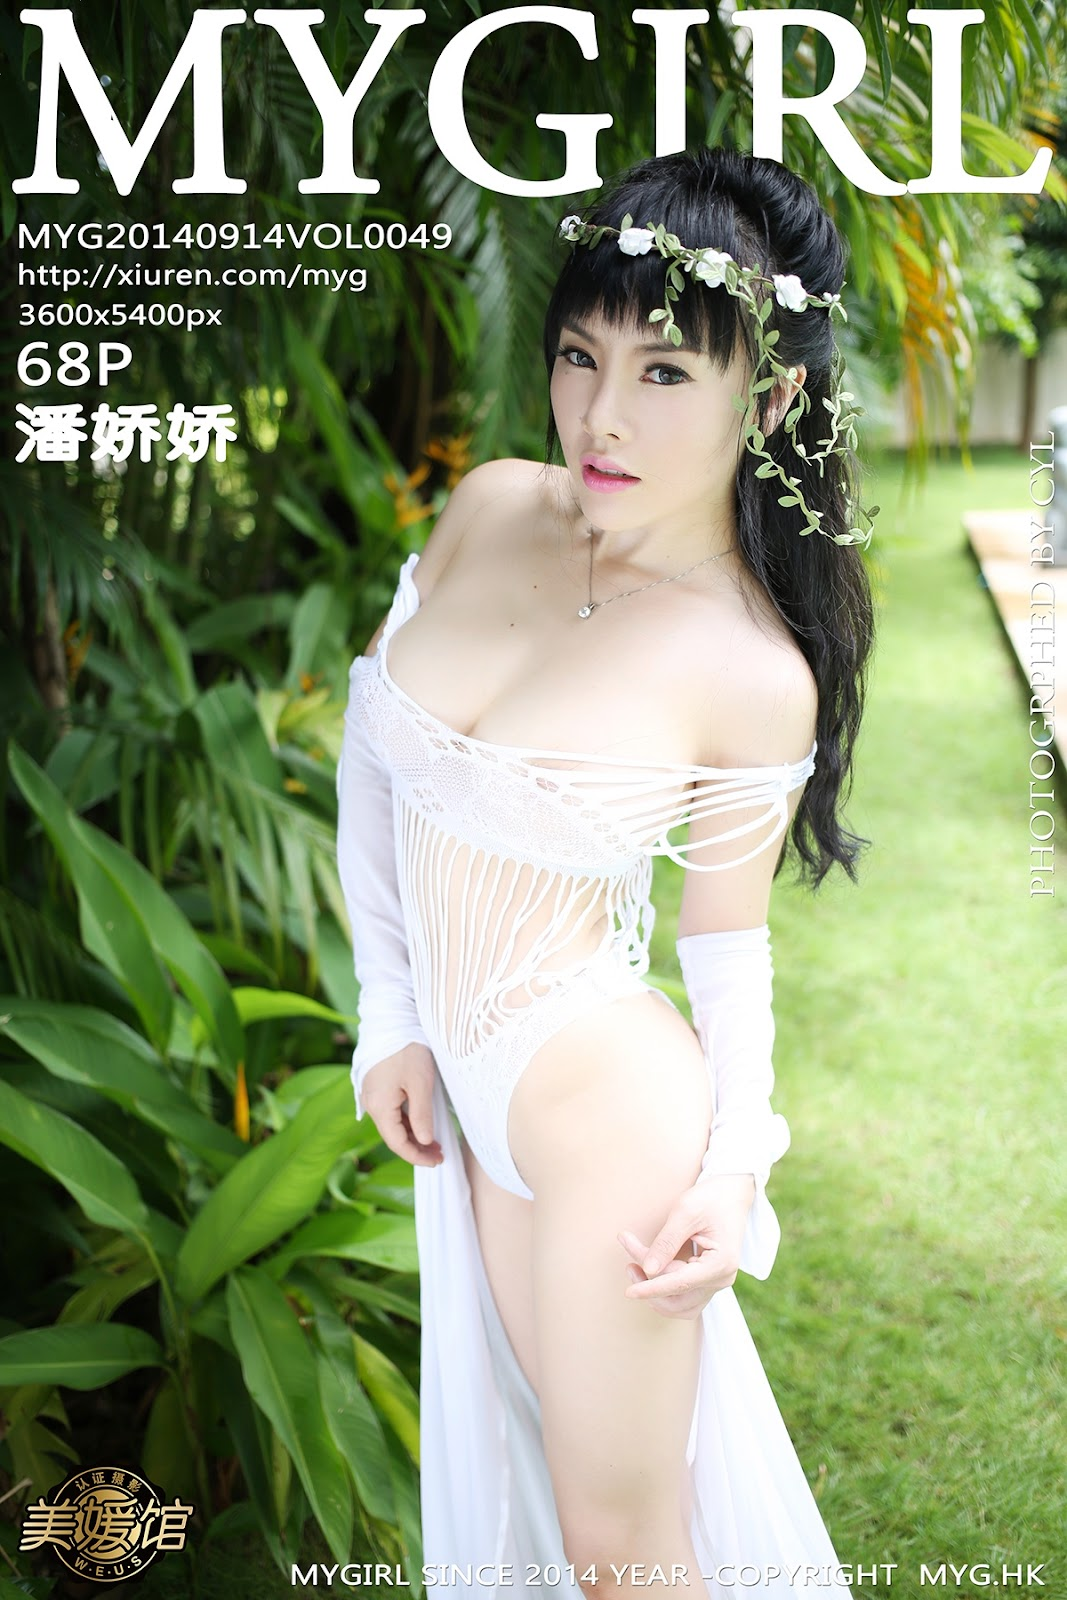 cover - Sexy Nude Model MYGIRL VOL.49